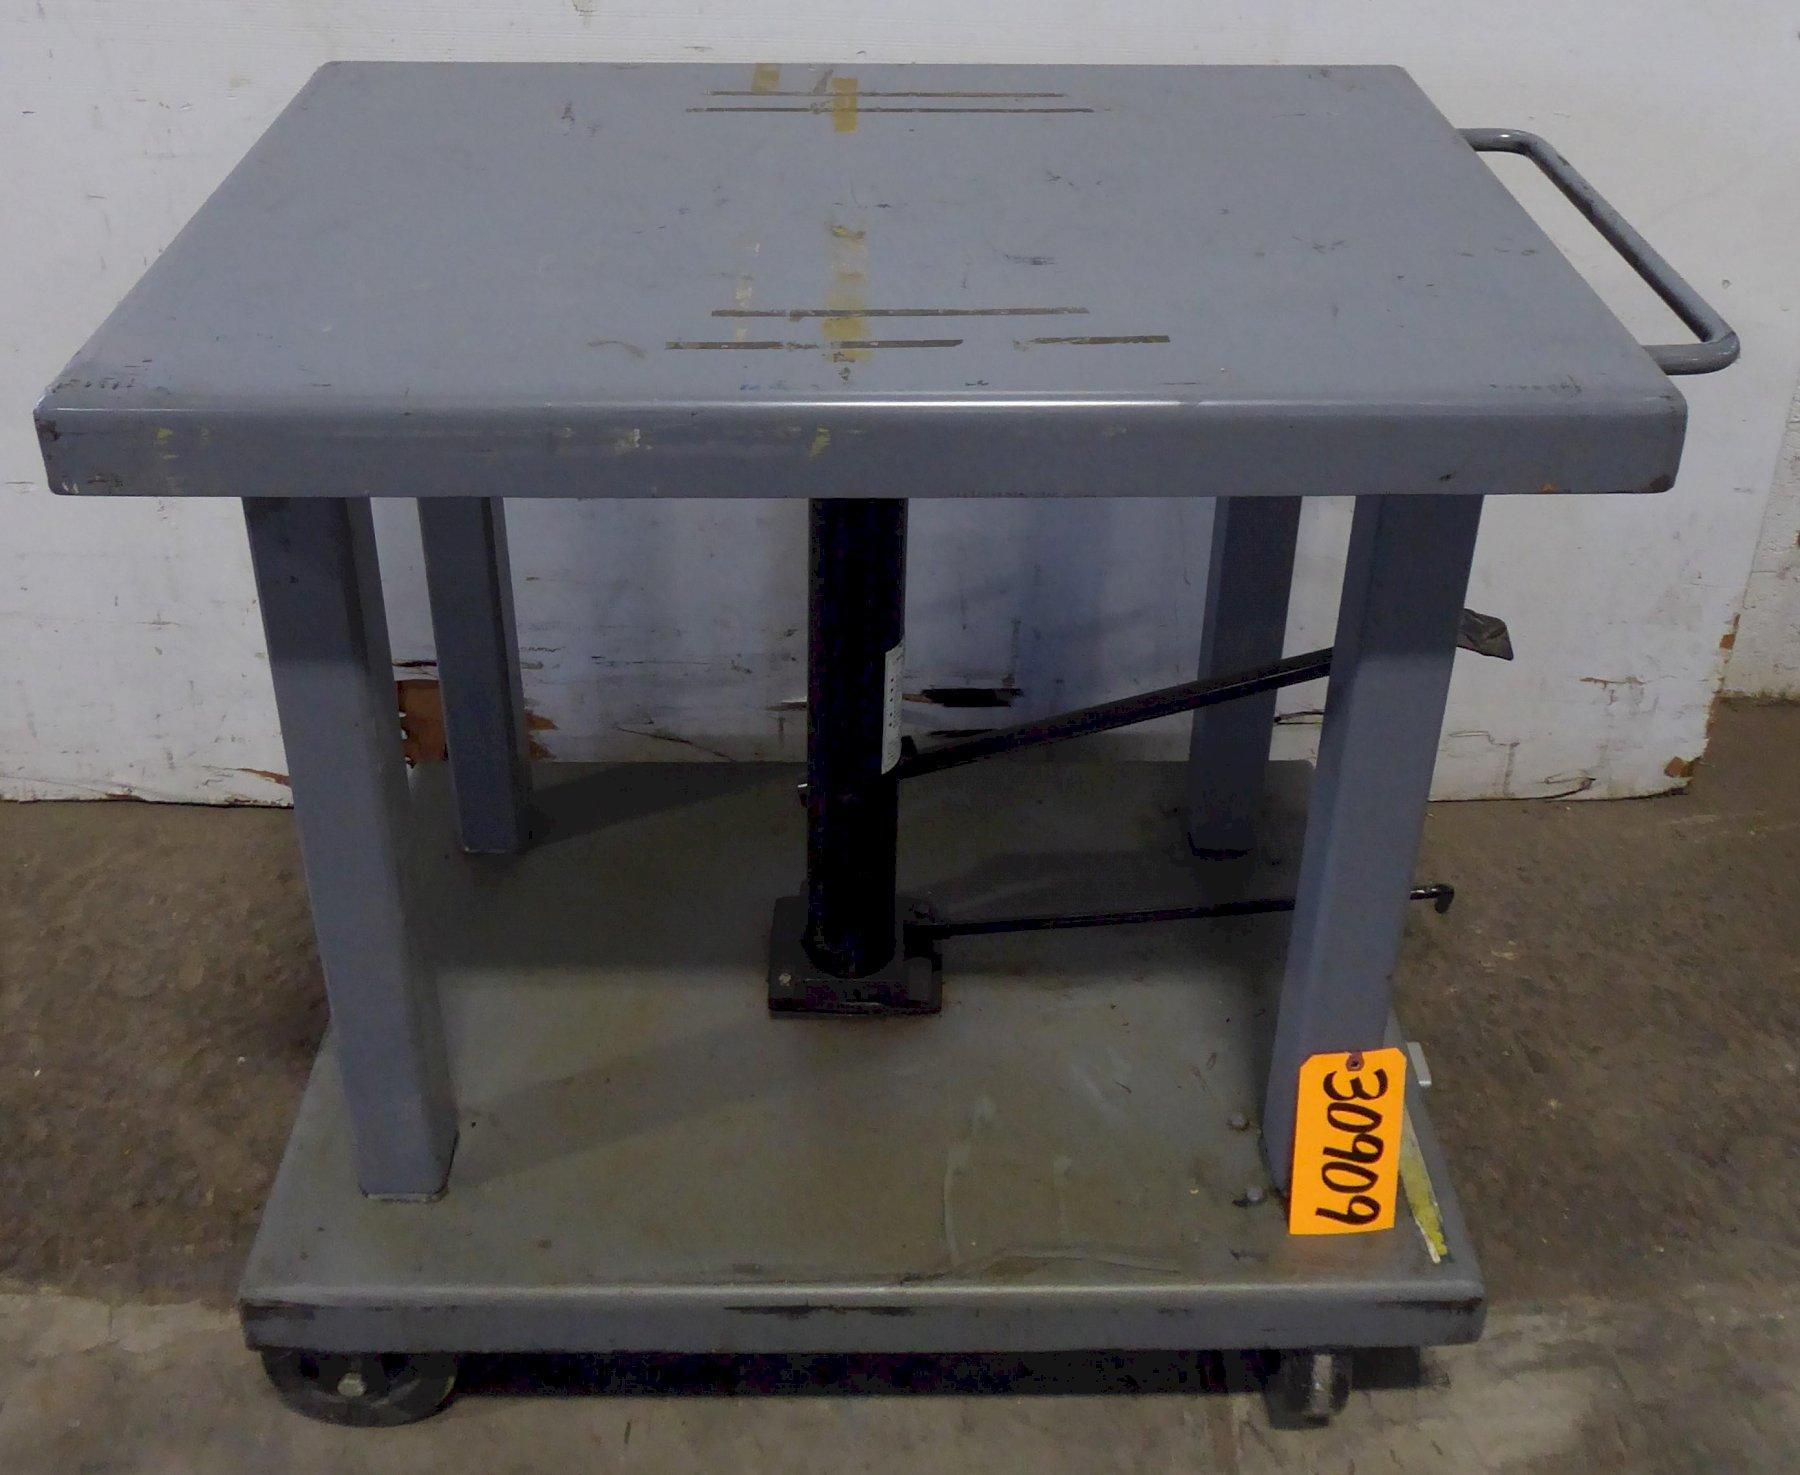 Wesco Lift Table LT-60-2436, 6000 Lb. Capacity, 24″ x 36″ Table, Excellent